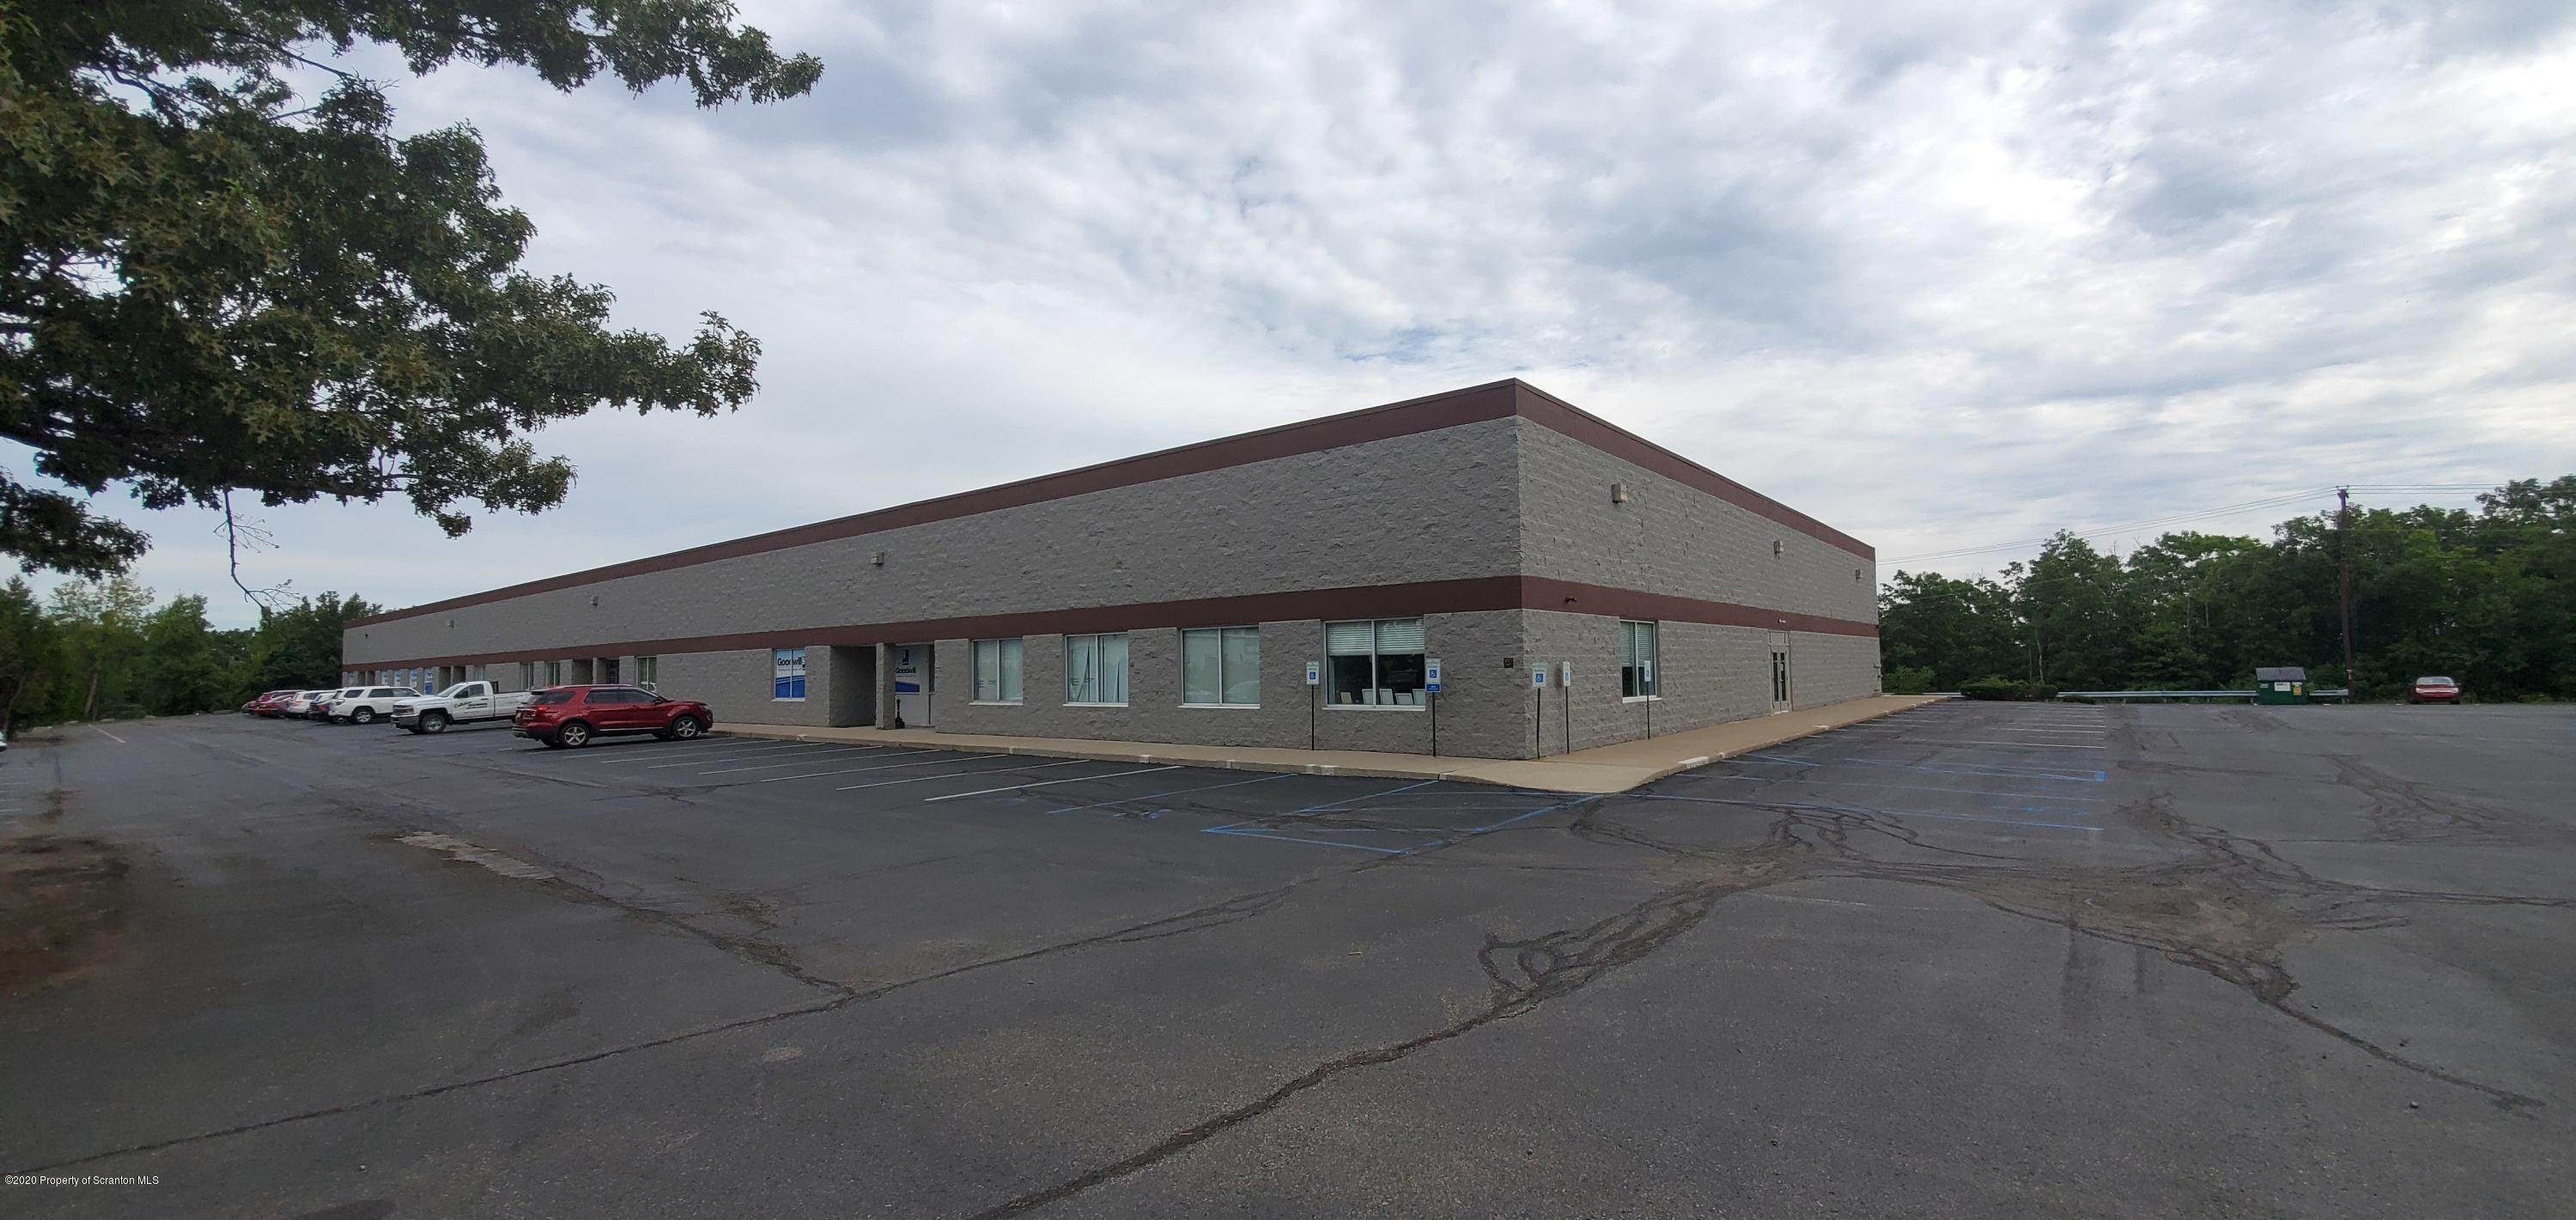 Property for Rent at 769 Keystone Industrial Park Rd Throop, Pennsylvania 18512 United States